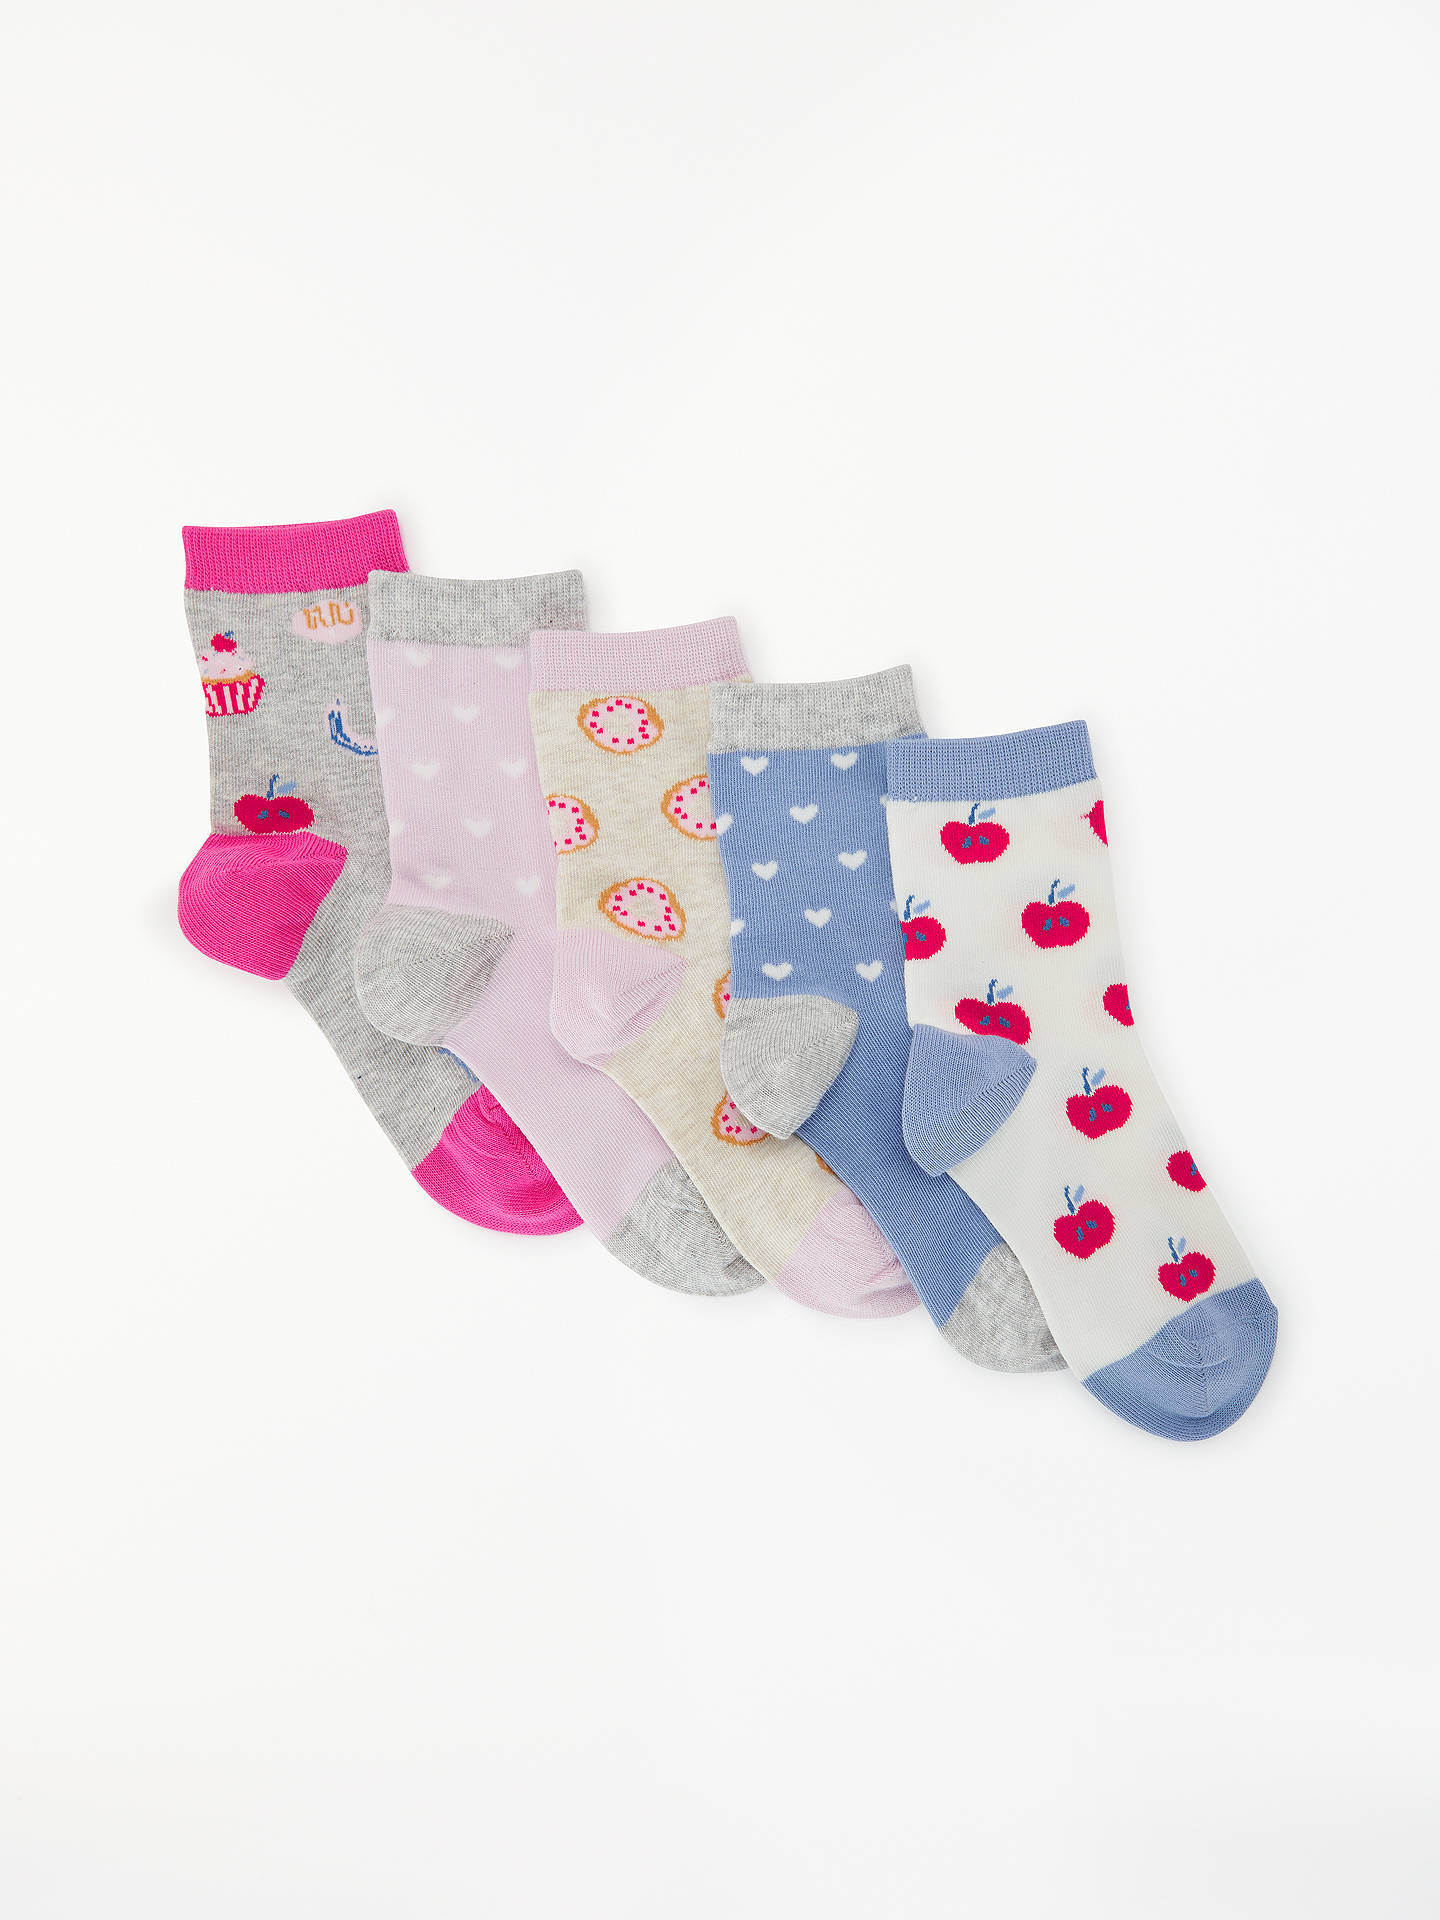 BuyJohn Lewis & Partners Girls' Snack Time Socks, Pack of 5, Multi, 6-8.5 Jnr Online at johnlewis.com